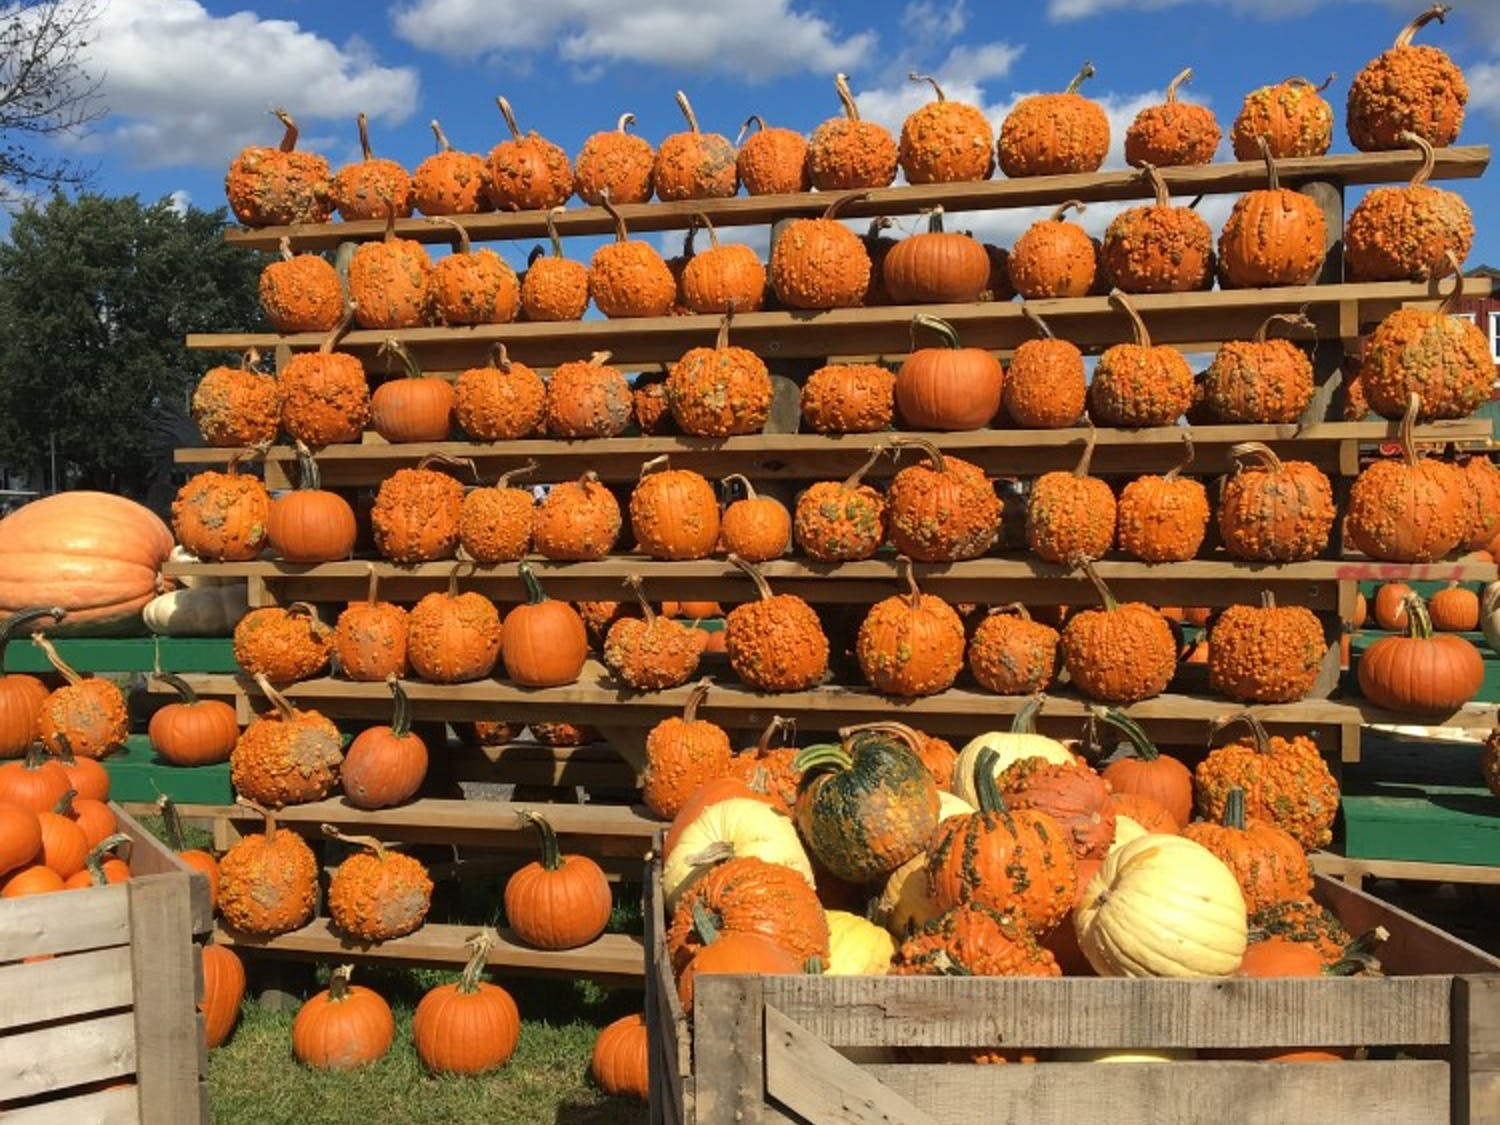 The Great Pumpkin Farm celebrates the third weekend into its fall festival. The festival features an abundance of food and entertainment, and of course a ridiculous amount of pumpkins.